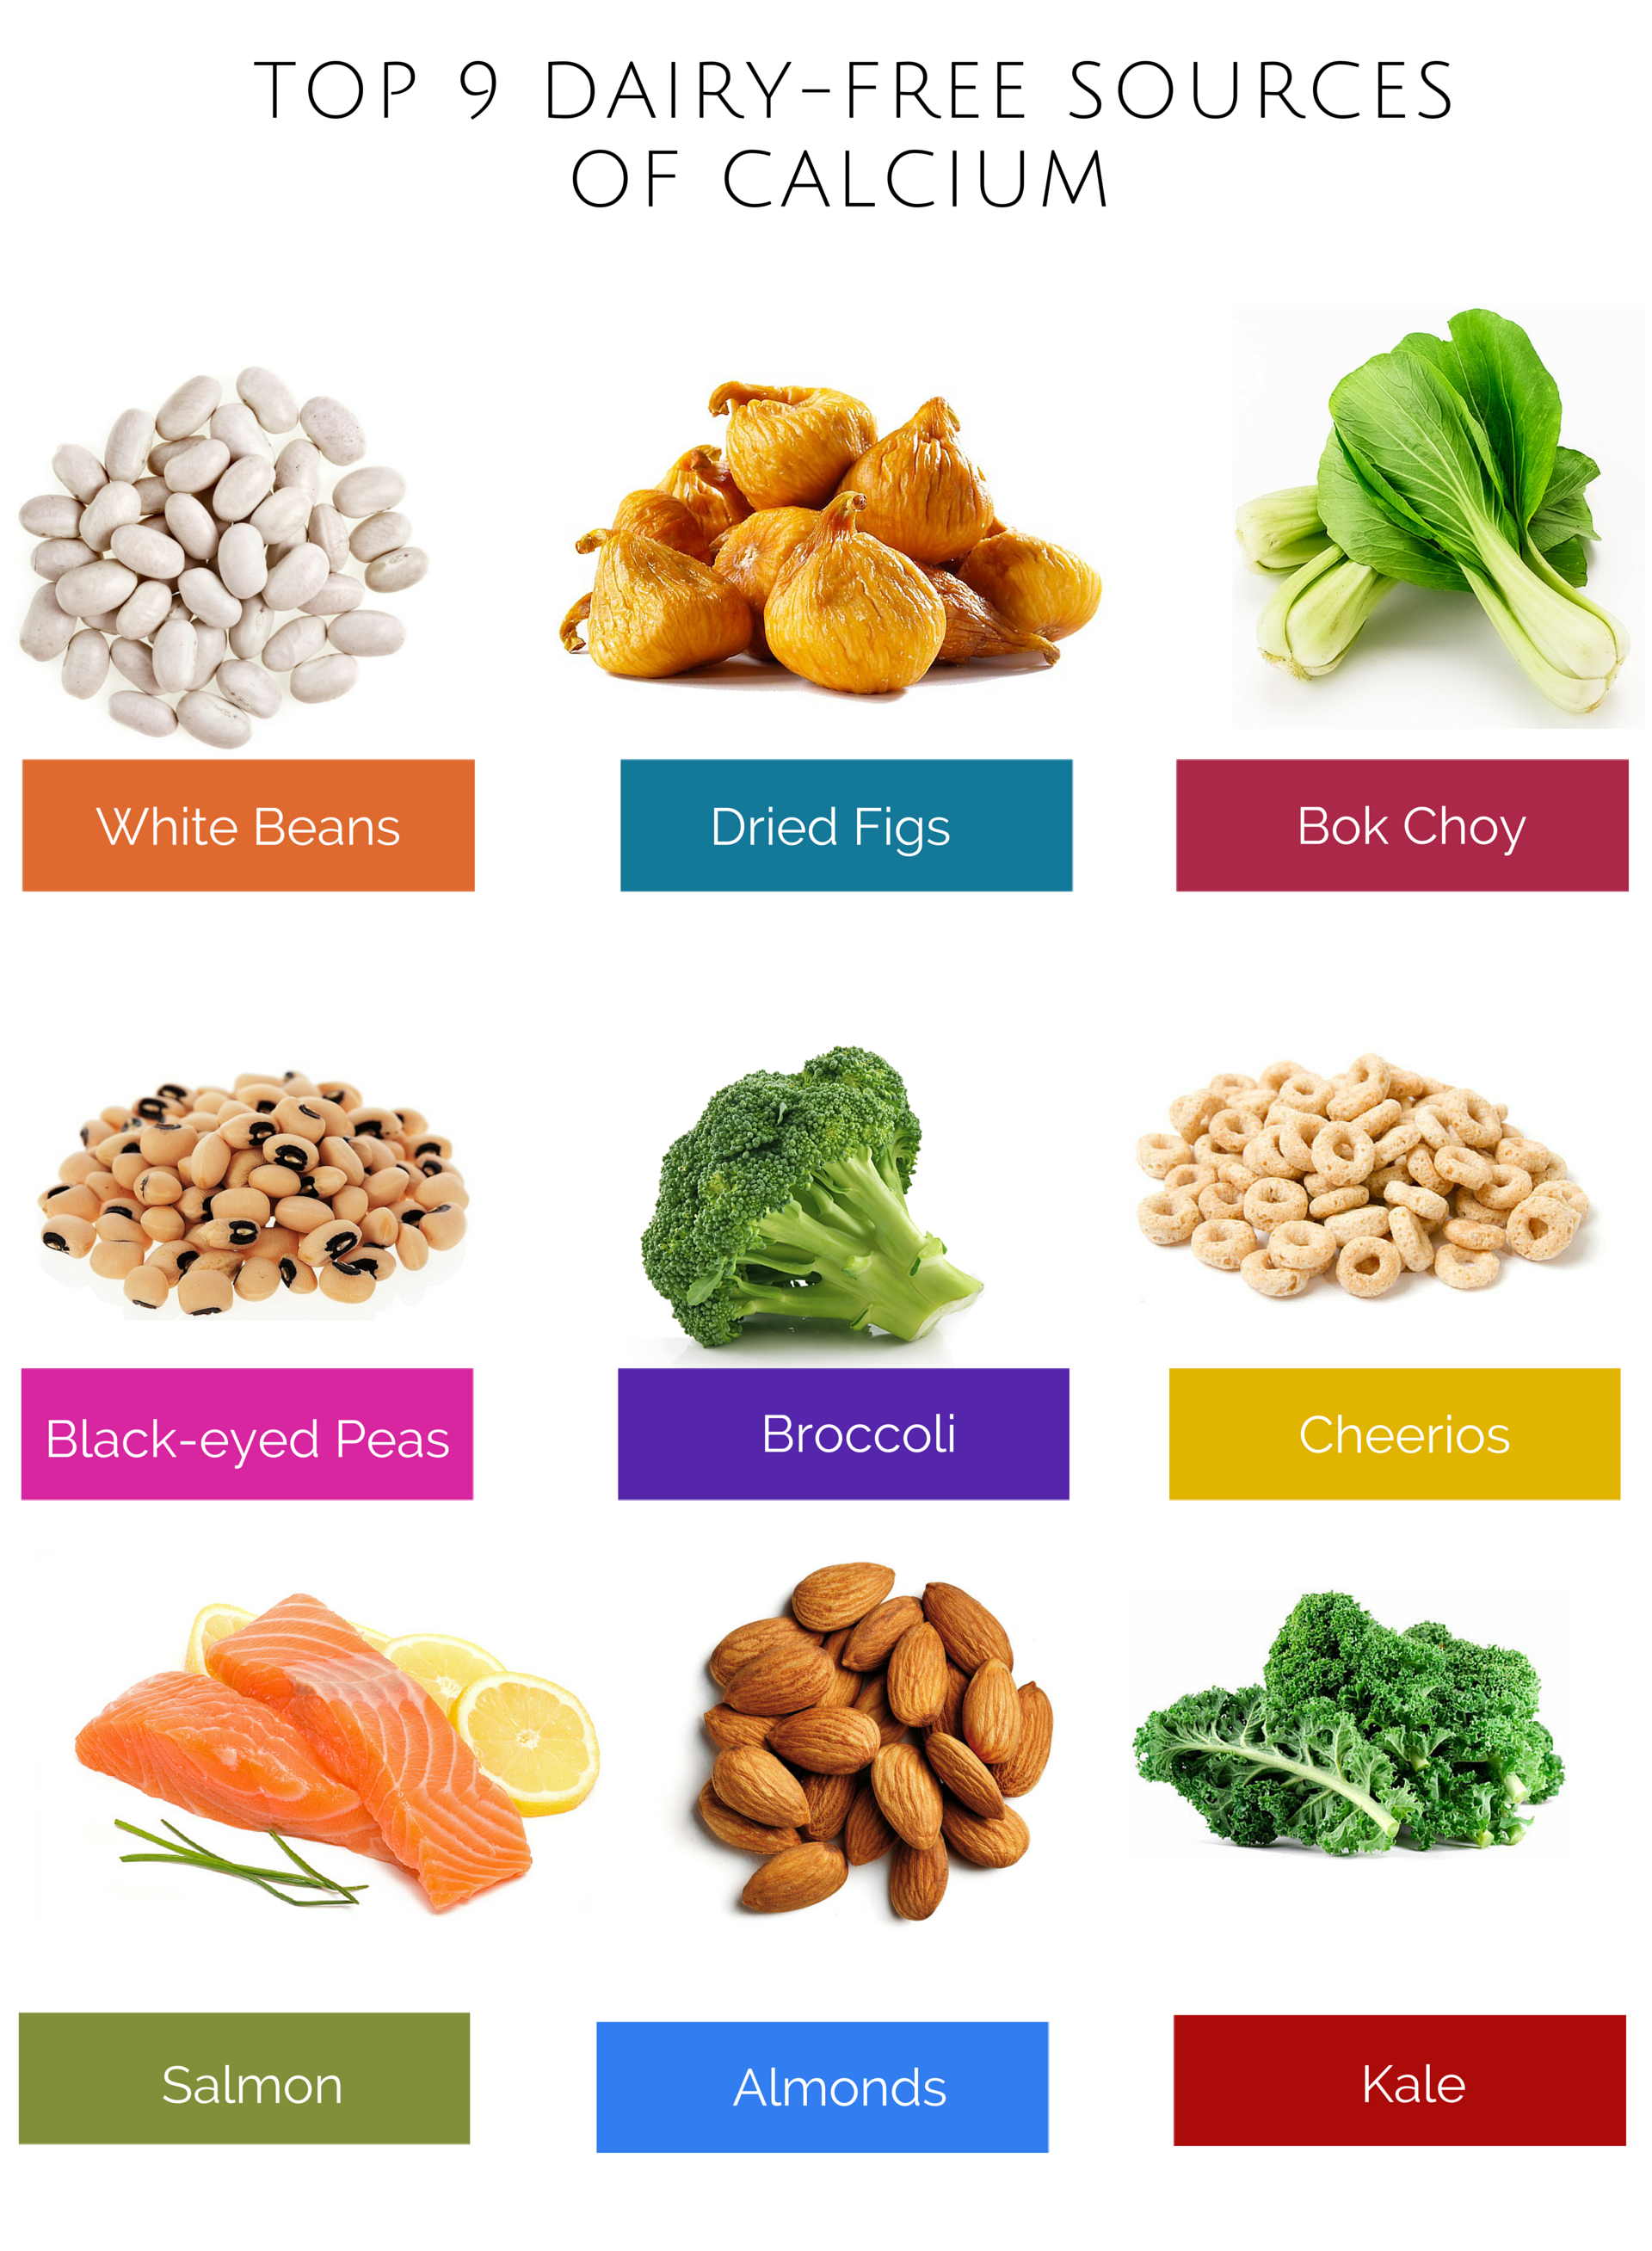 Top 9 dairy free sources of calcium. Visit http//www